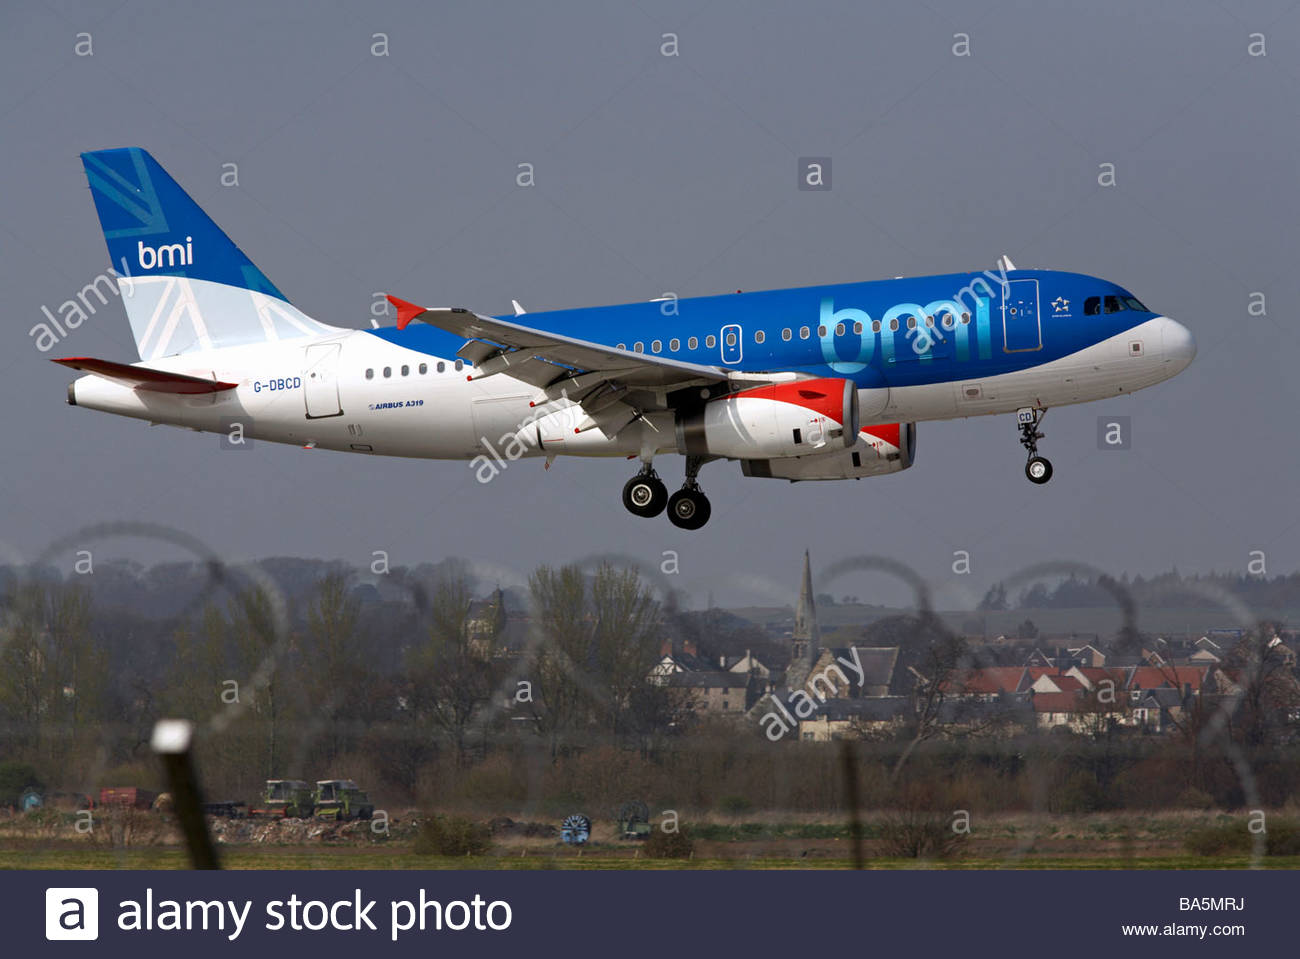 bmi Airbus flight approaching runway - Stock Image